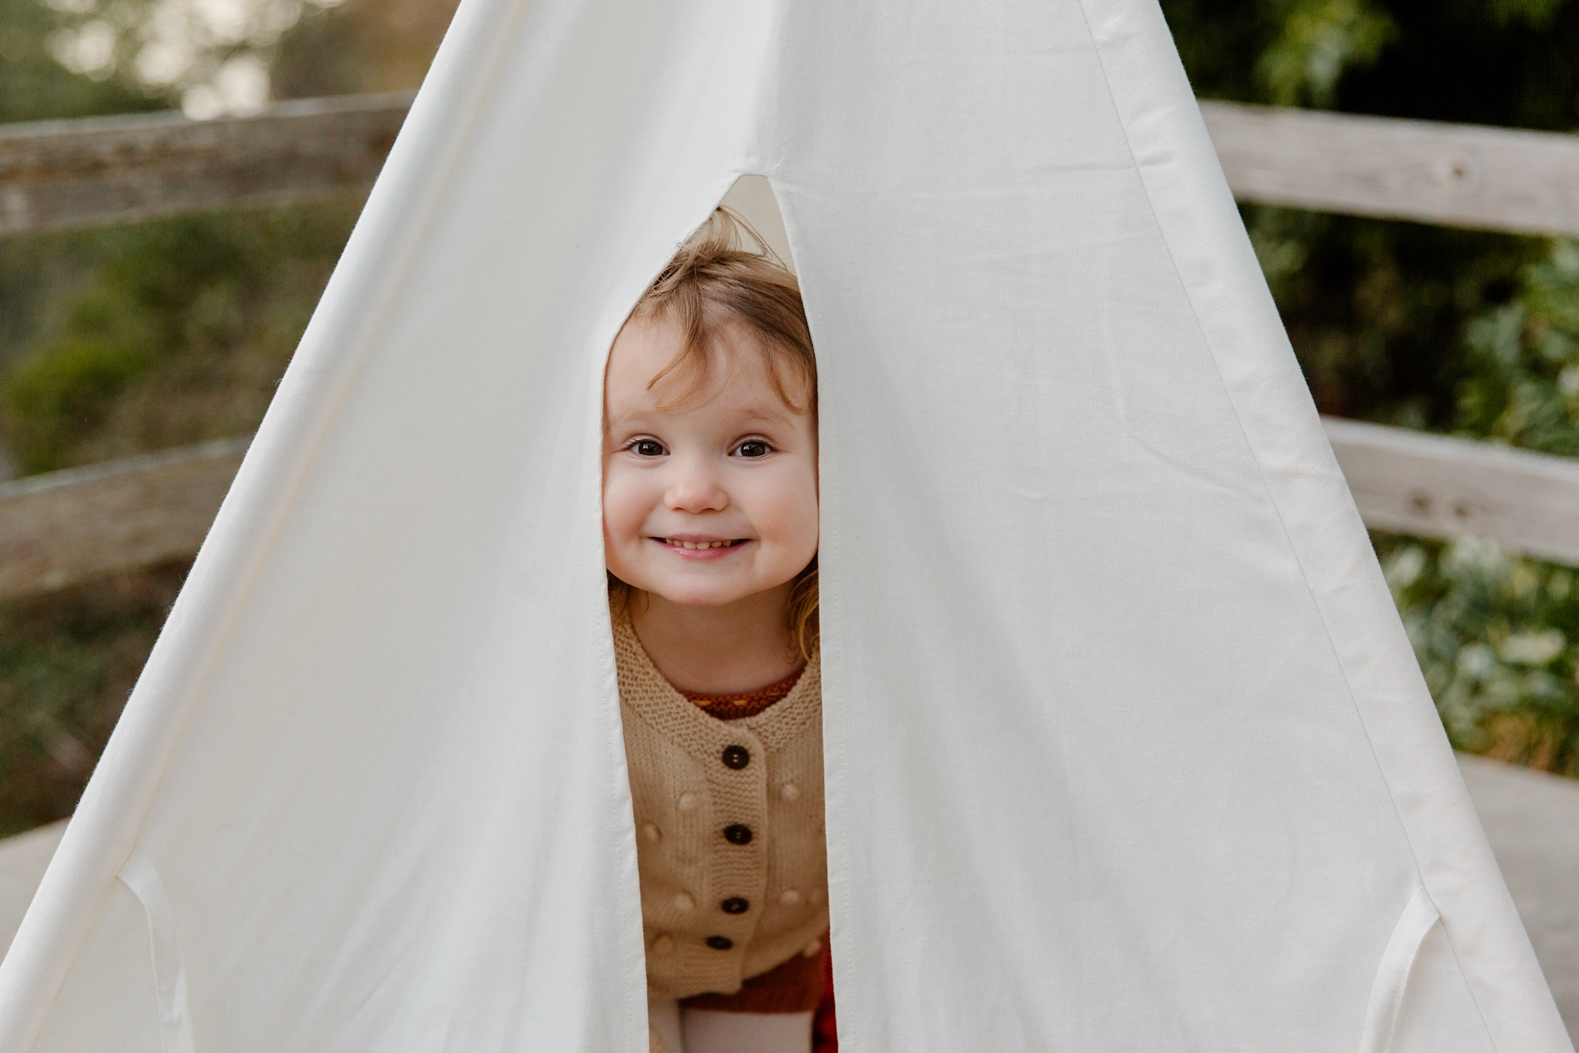 kind in tent